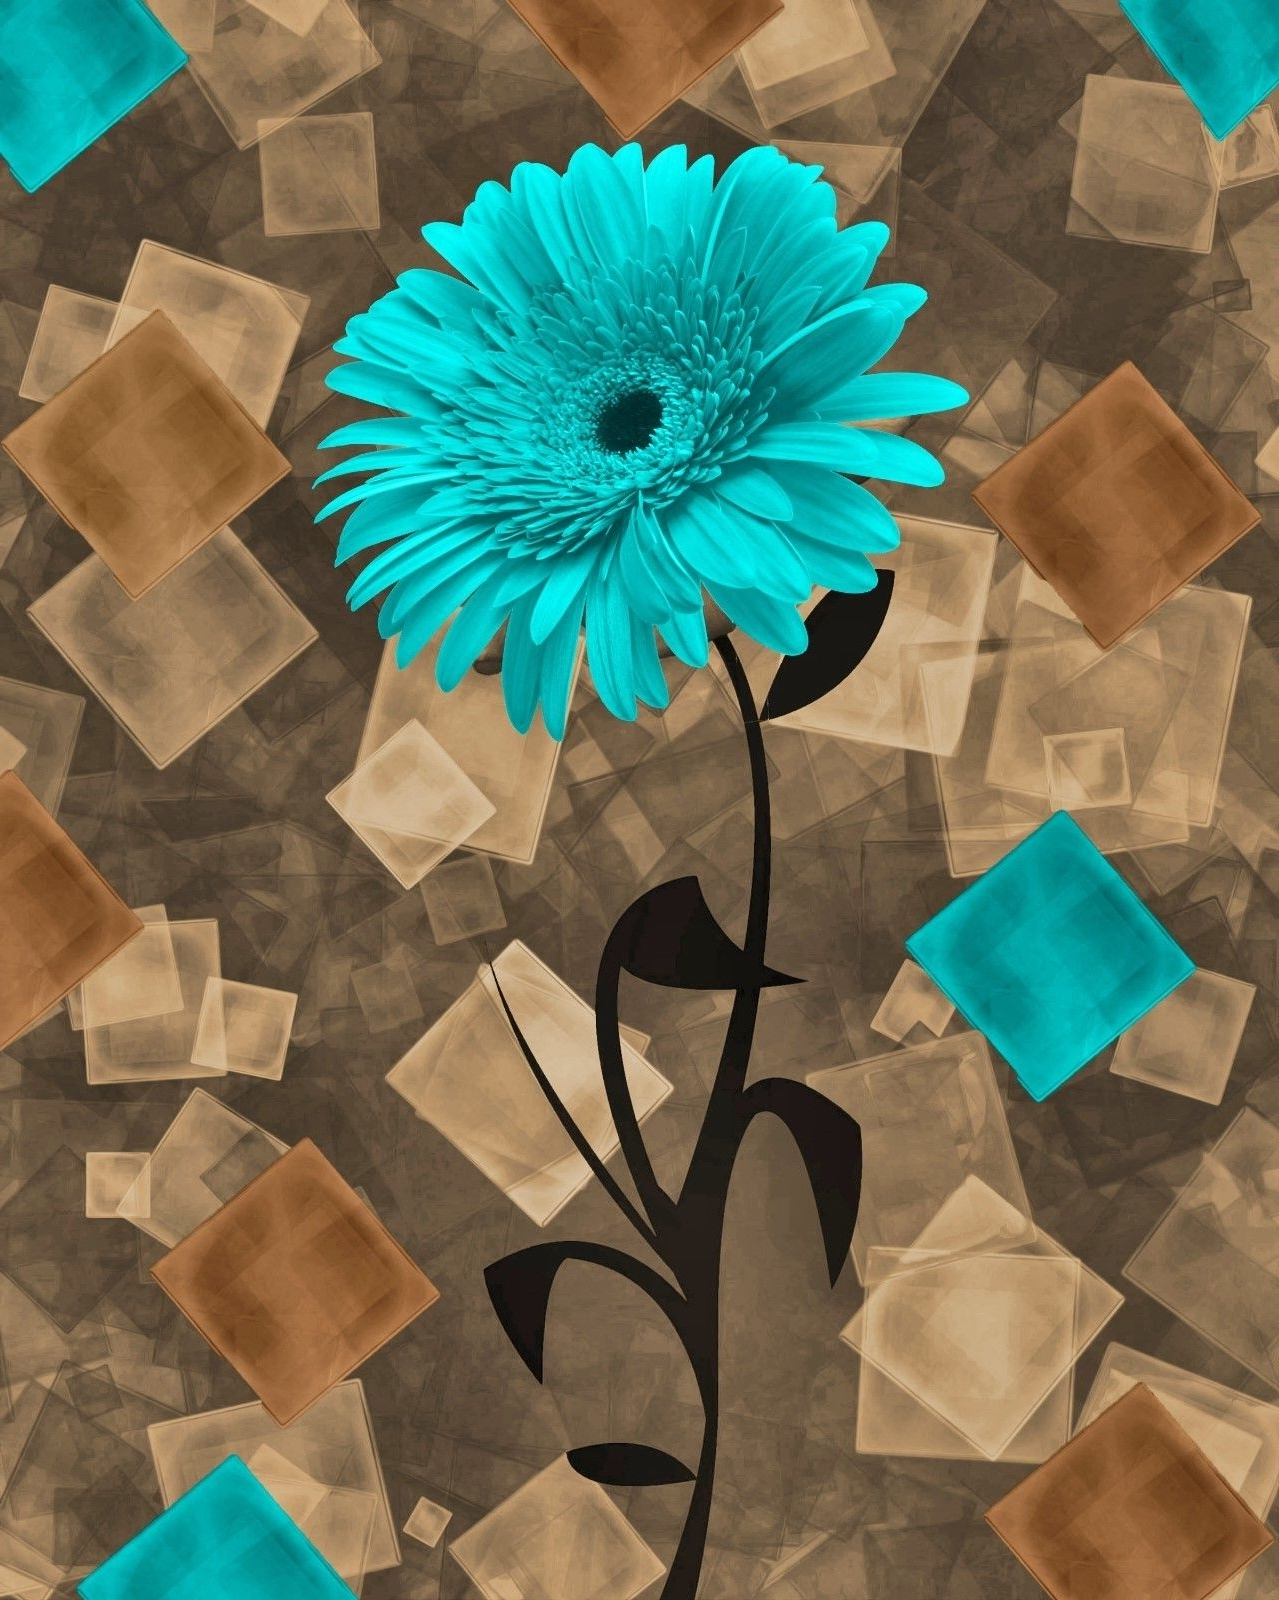 Latest Brown And Turquoise Wall Art Inside Teal Brown Daisy Flower Modern Bathroom Bedroom Home Decor Wall (View 2 of 15)